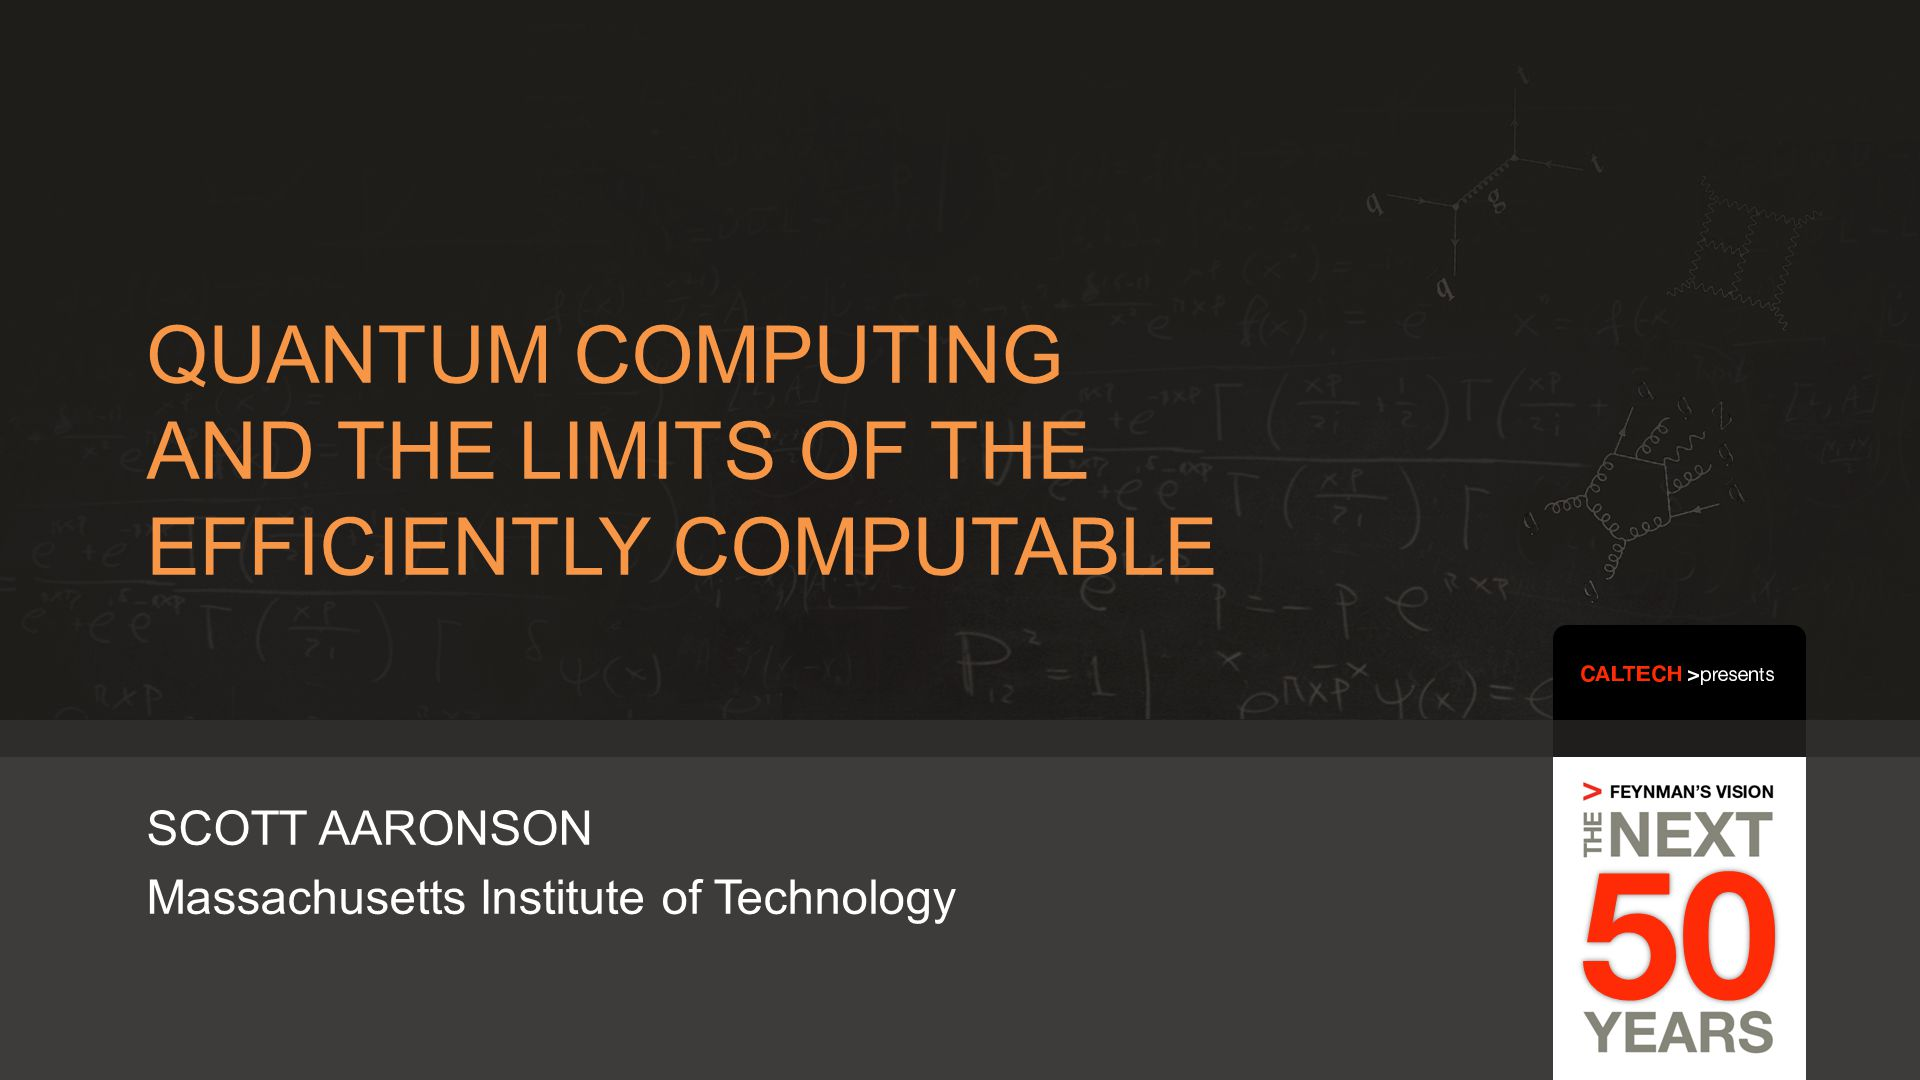 Copyright © CALTECH 20112 SCOTT AARONSON Massachusetts Institute of Technology QUANTUM COMPUTING AND THE LIMITS OF THE EFFICIENTLY COMPUTABLE